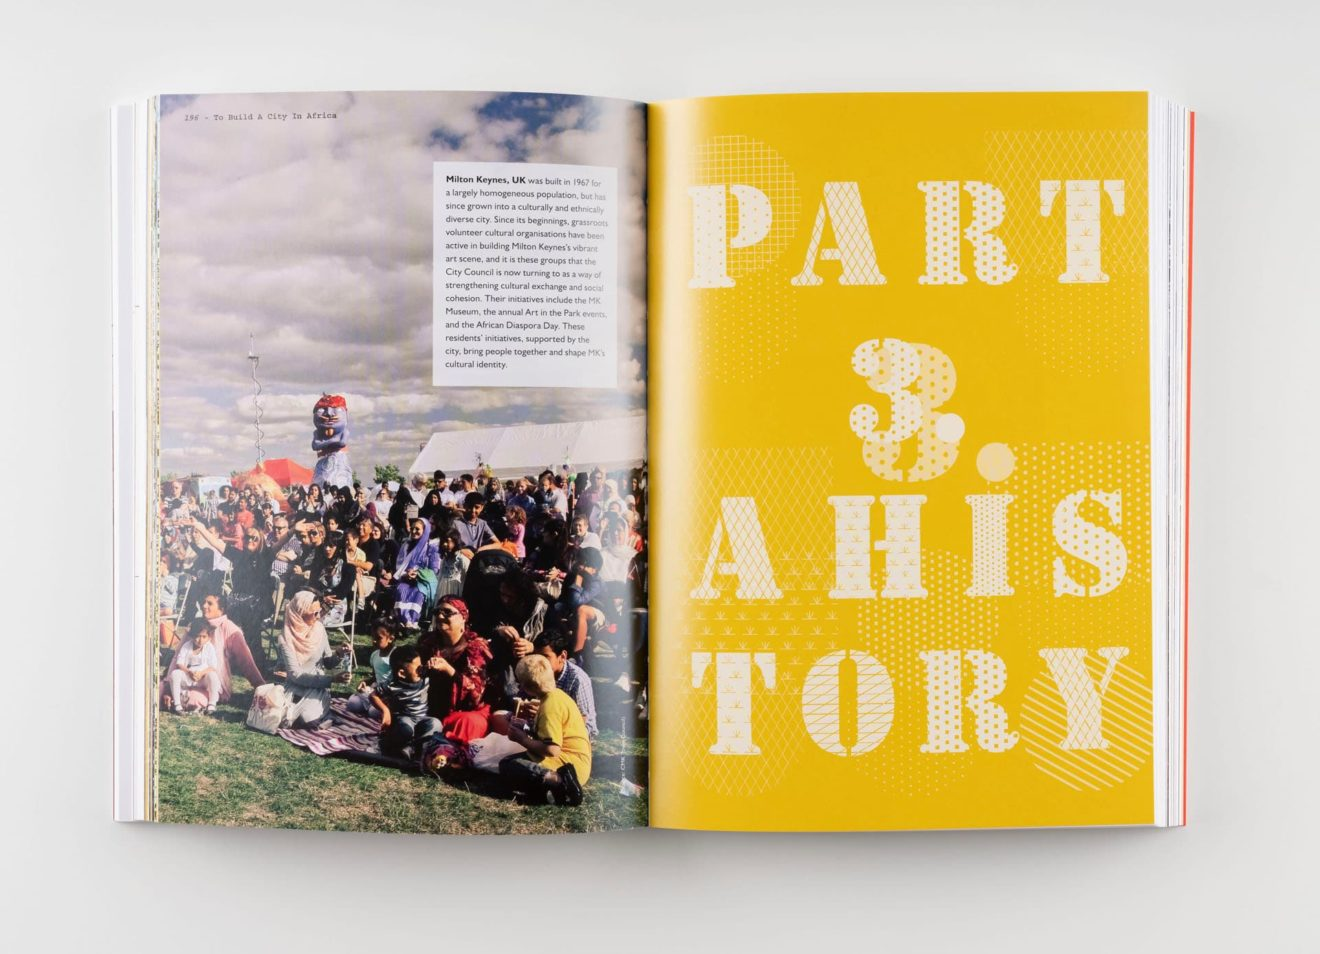 Spread uit To Build a City in Africa: A History and a Manual